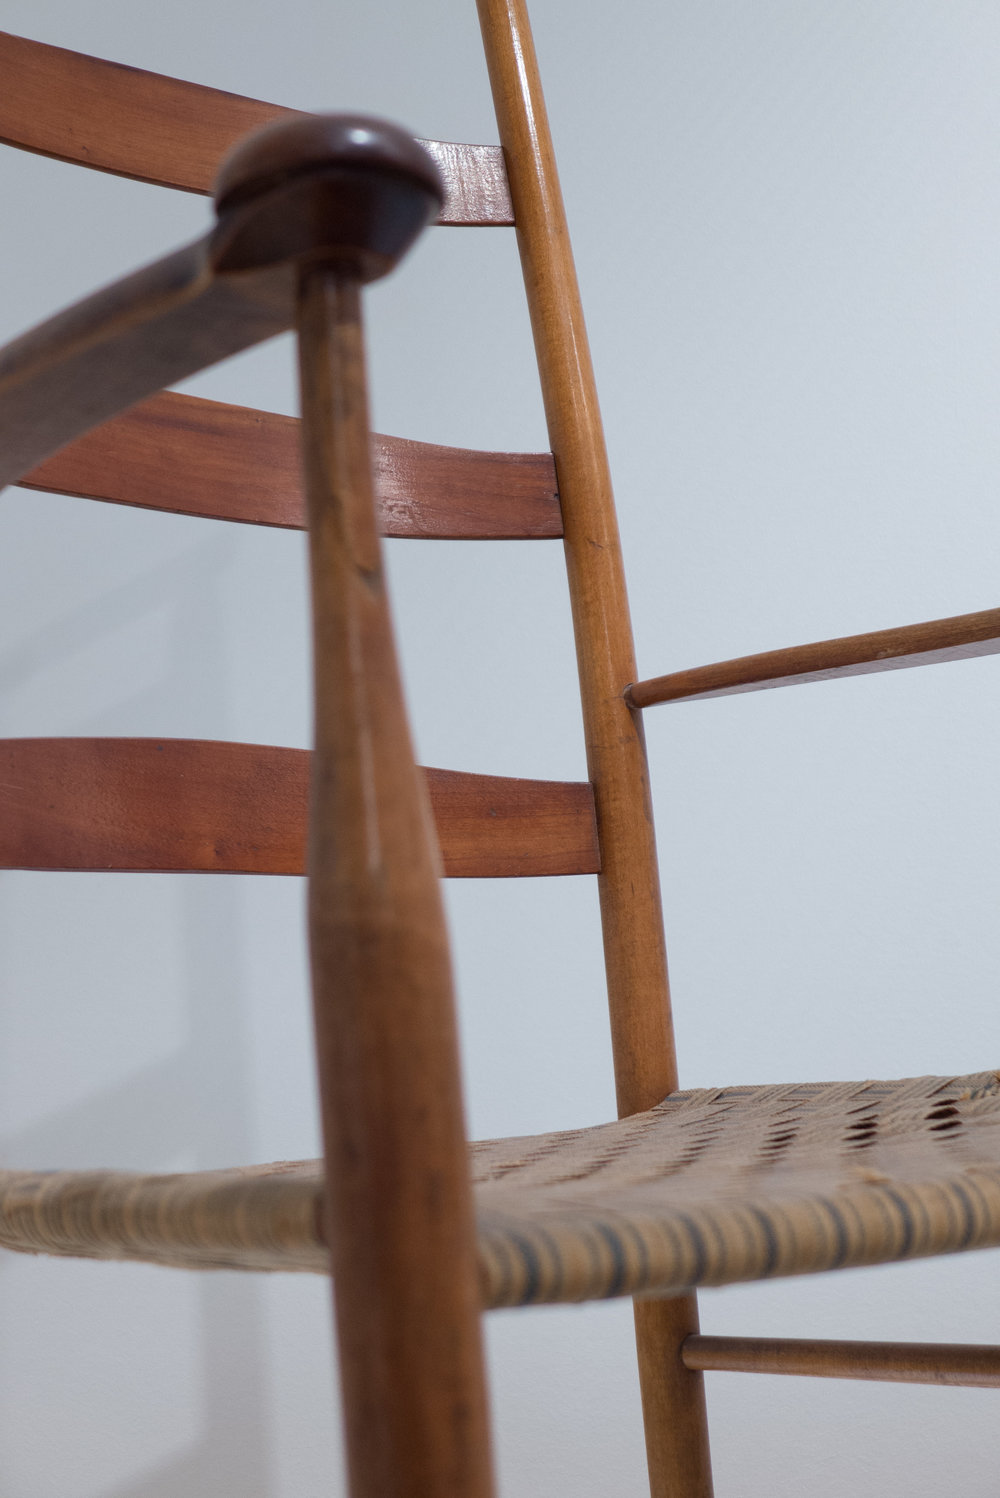 the Shaker rocking chair in the collection at Designmuseum Danmark ...